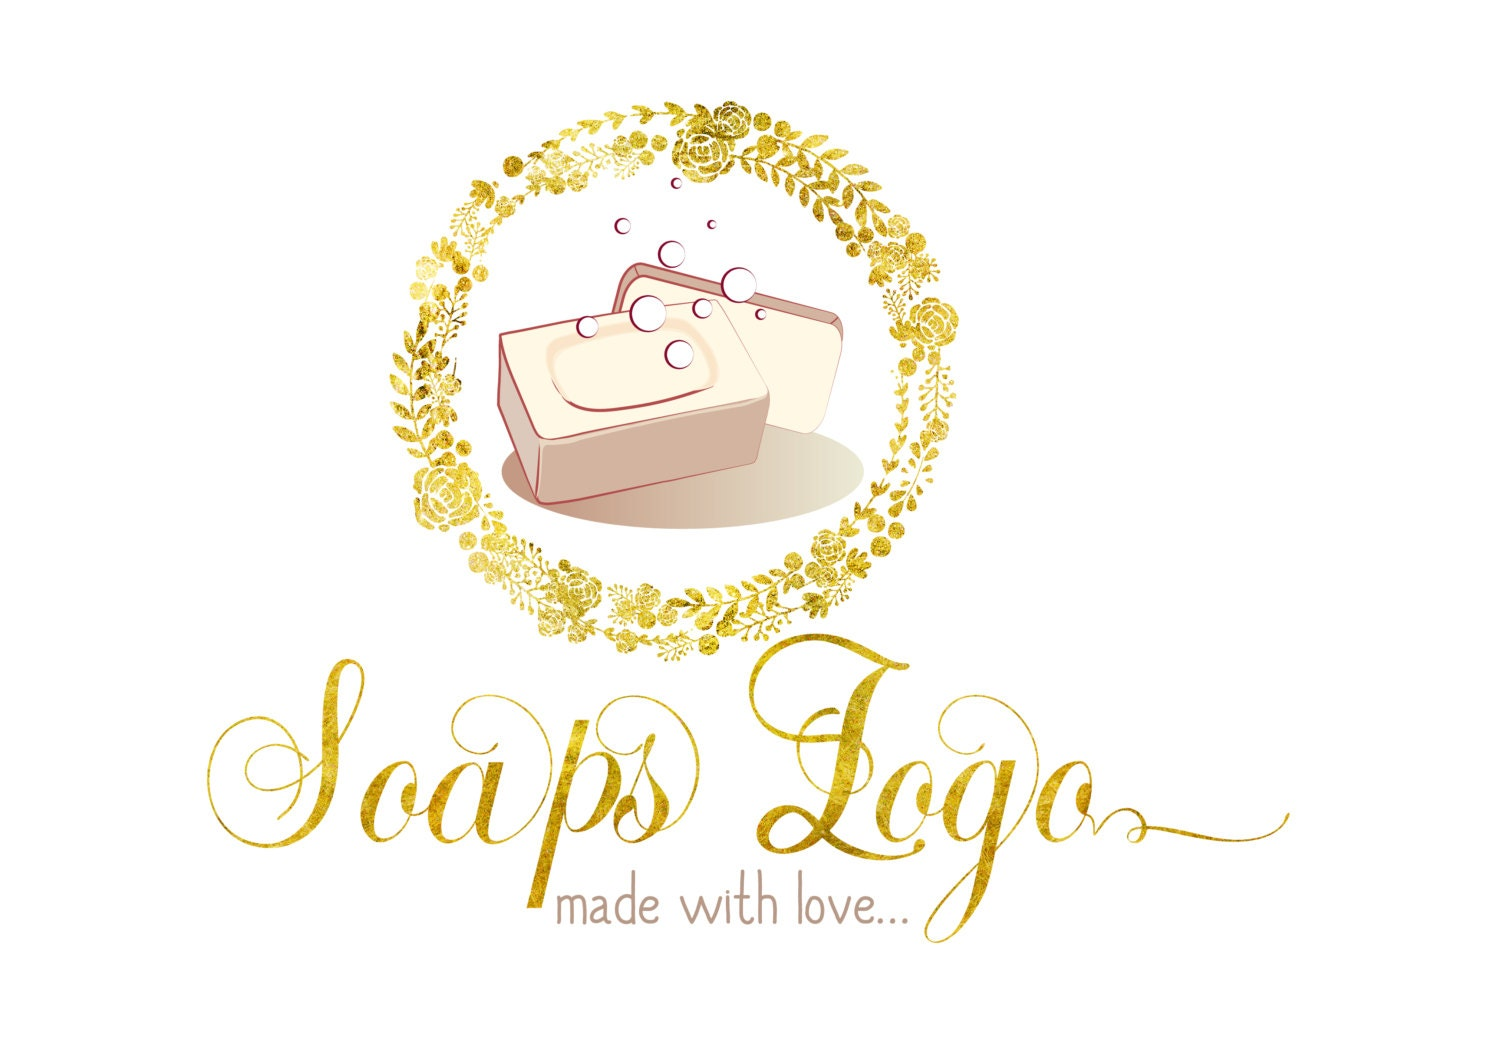 digital custom logo design bath bathtub tub logo logo